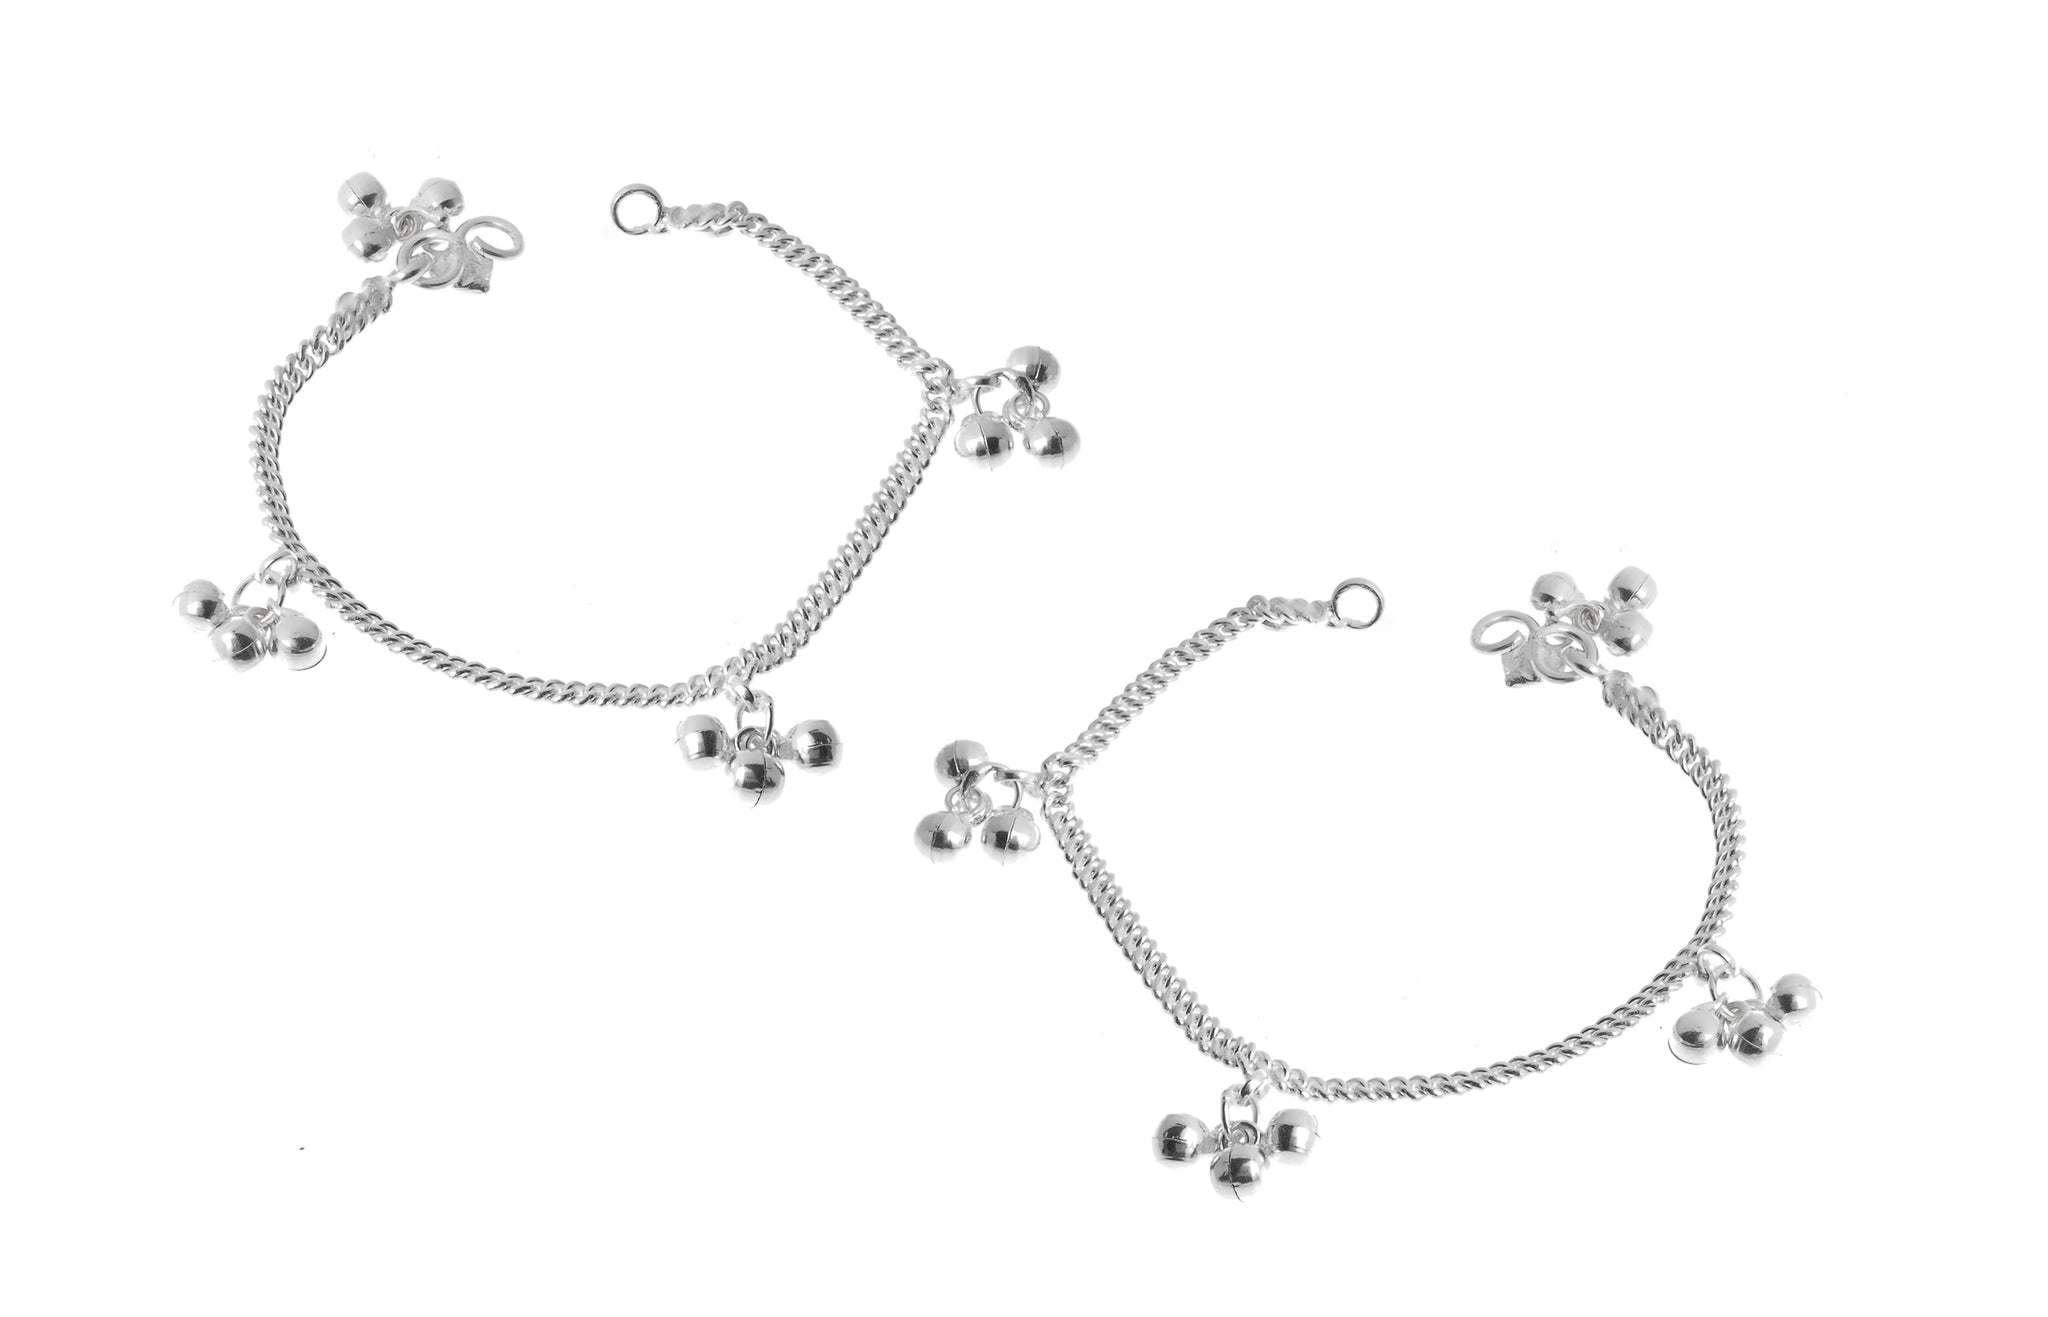 Sterling Silver Anklets with Ghughri Bell Charms for Children (A-7152) - Pair